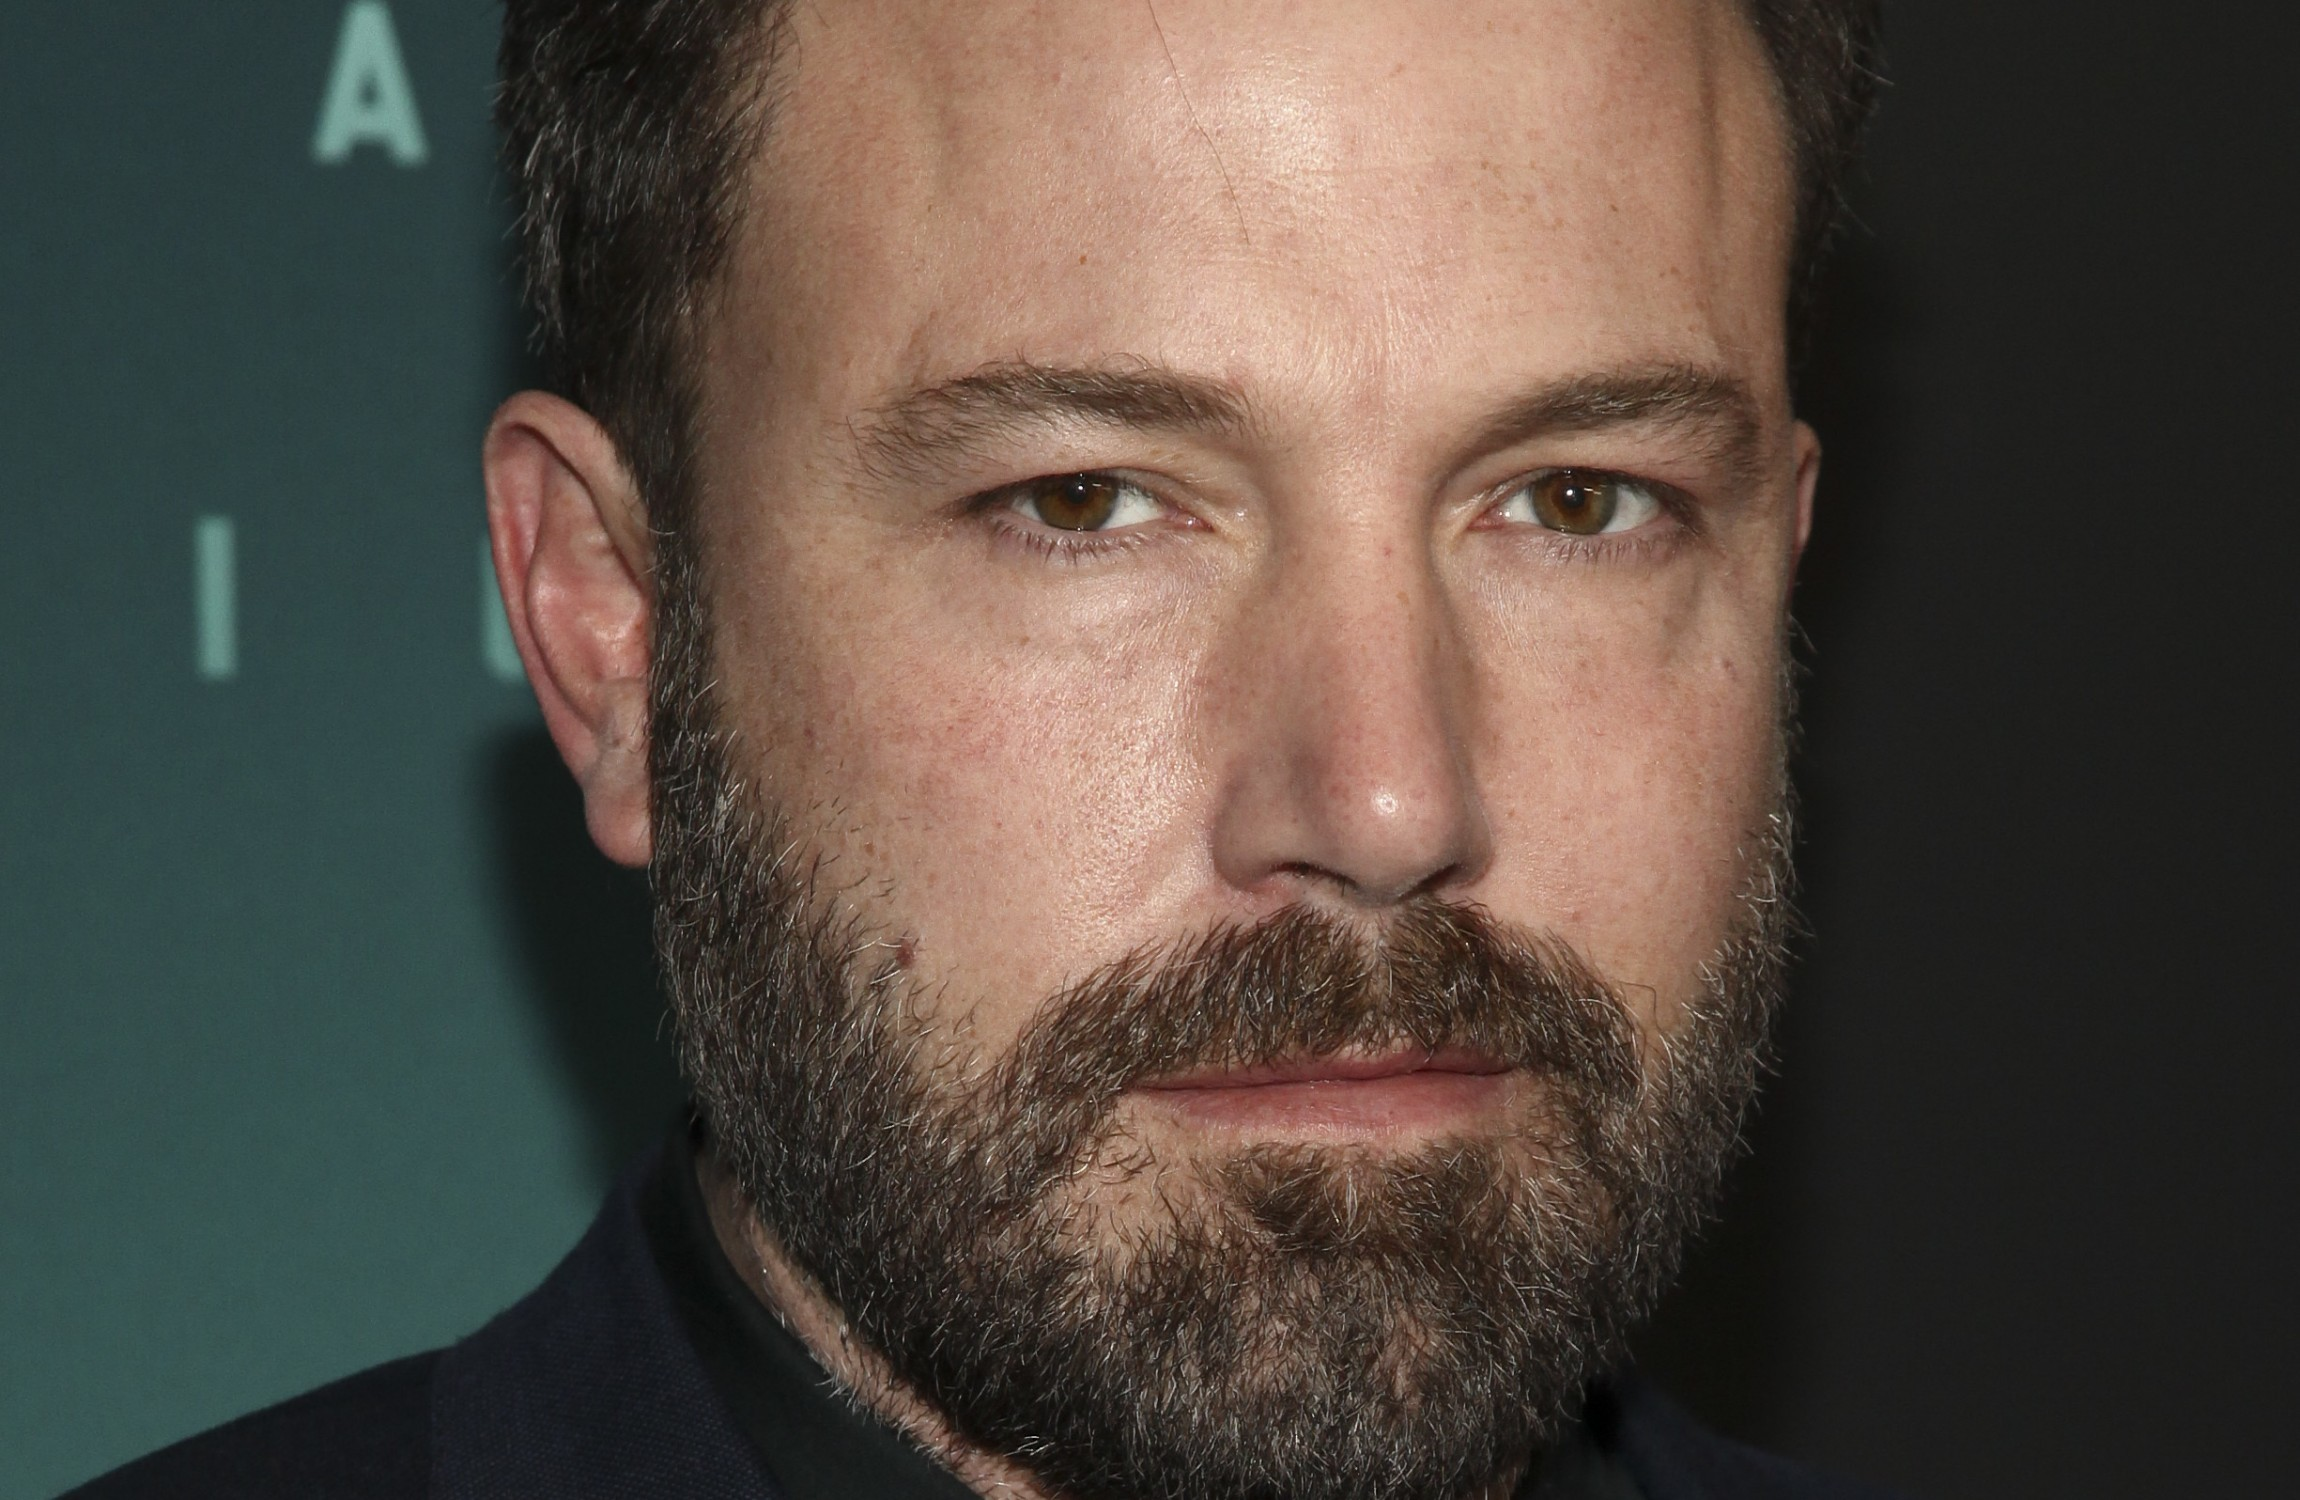 Ben Affleck opens up about his battle with alcoholism